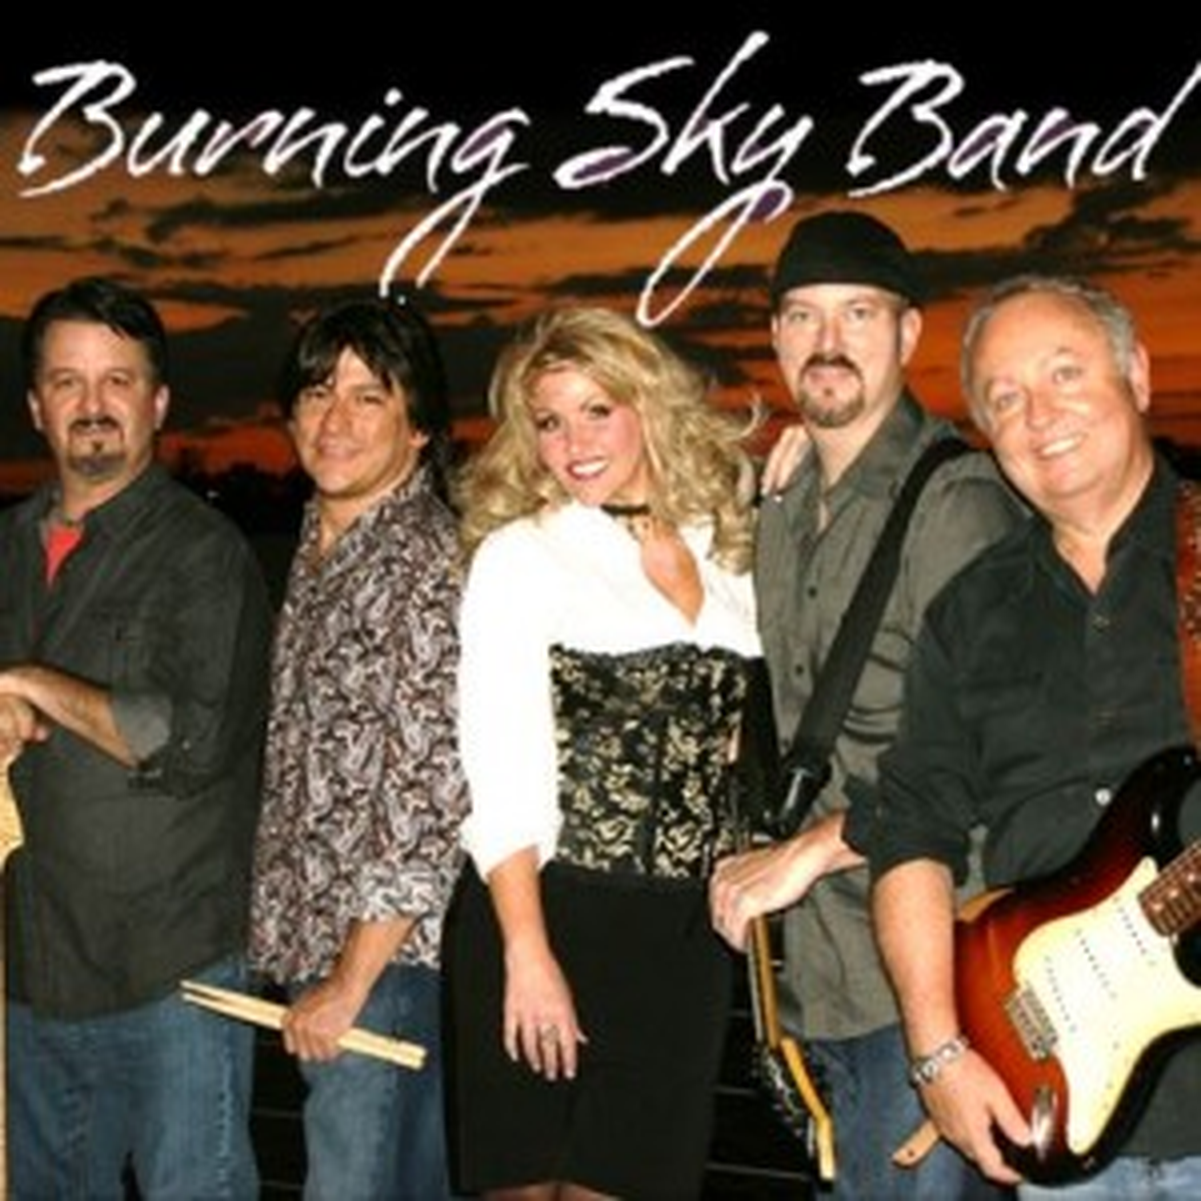 Burning Sky Band